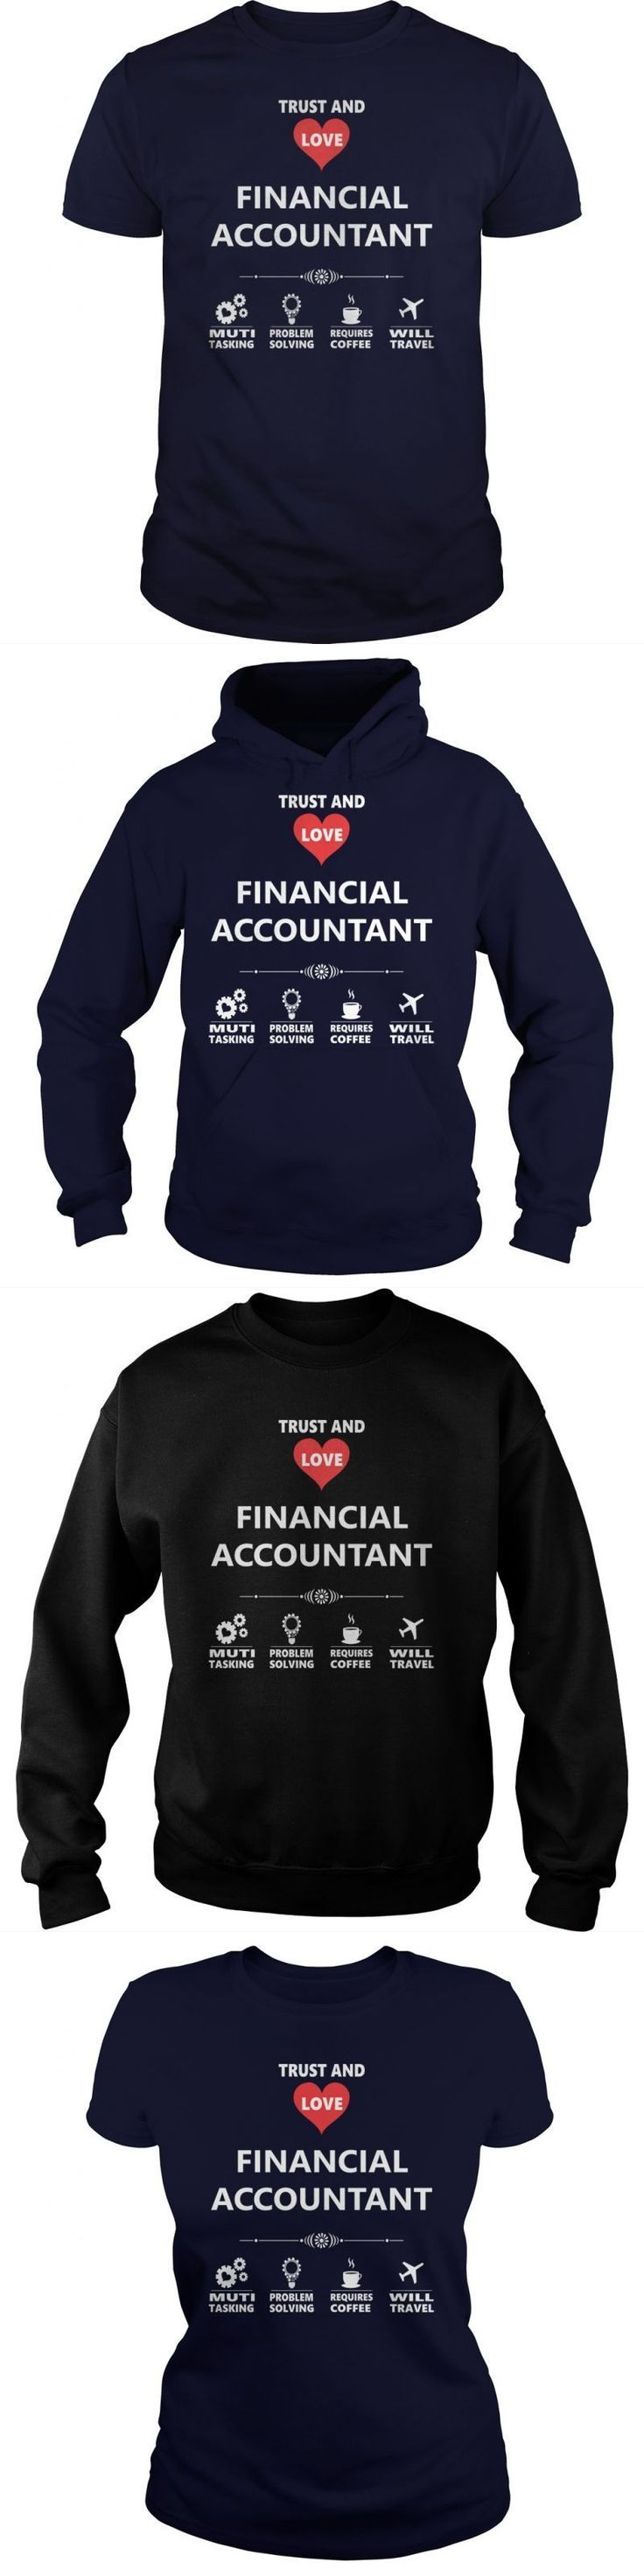 FINANCIAL ACCOUNTANT JOB T-SHIRT GUYS LADIES YOUTH TEE HOODIE SWEAT SHIRT V-NECK UNISEX JOBS SUNFROG BESTSELLER...FIND YOUR JOB HERE:    https://www.sunfrog.com/Jobs/?45454  								  								 Guys Tee Hoodie Sweat Shirt Ladies Tee Youth Tee Guys V-Neck Ladies V-Neck Unisex Tank Top Unisex Longsleeve Tee t shirt for accountant accountant joke t shirt little miss accountant t shirt nerdy accountant t shirts